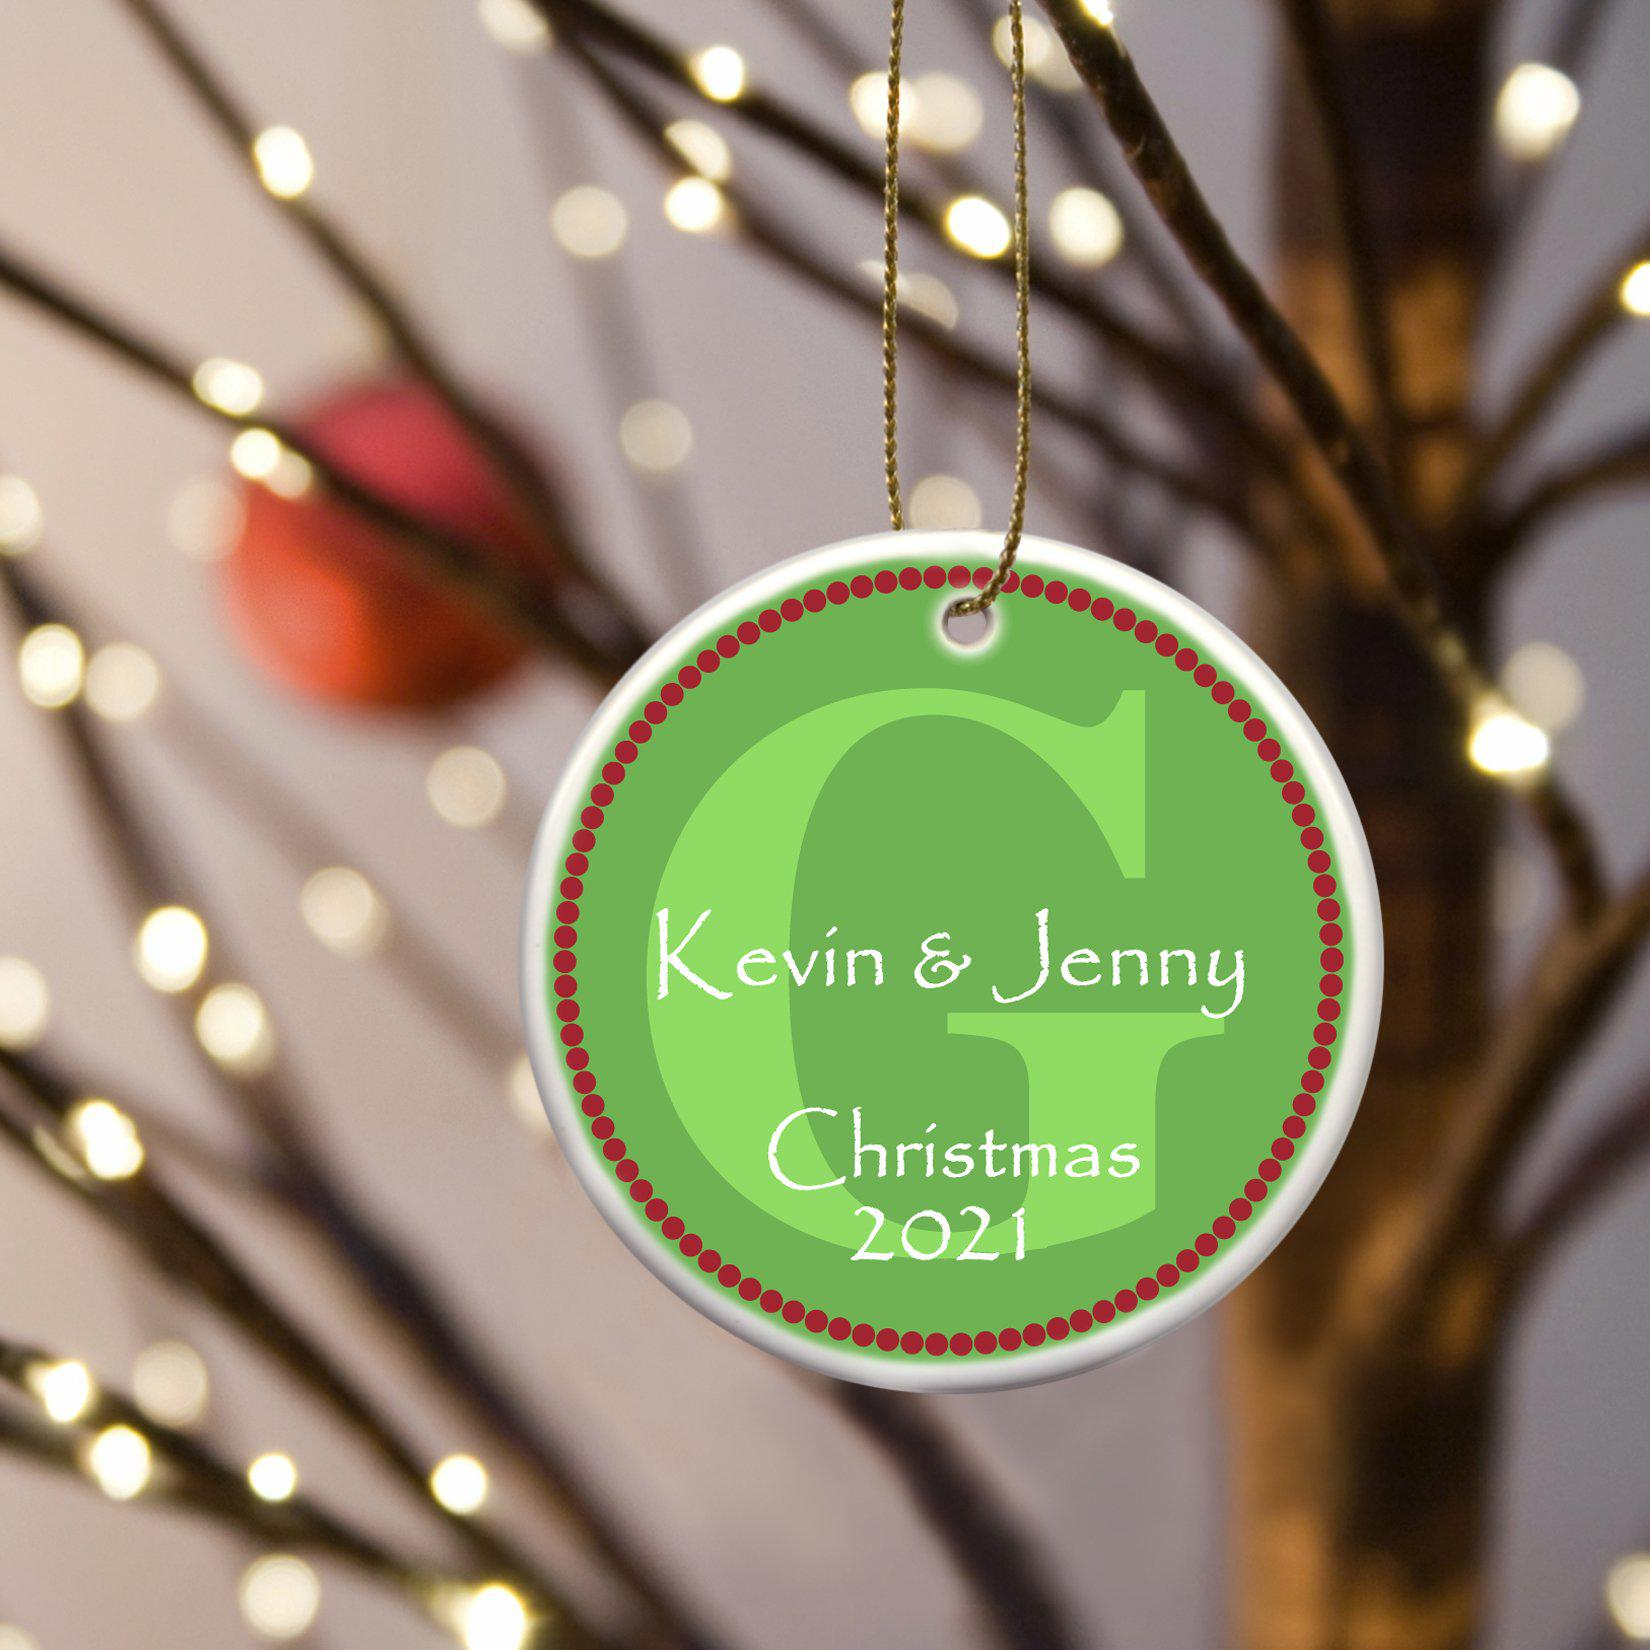 Personalized Ceramic Ornaments - Christmas Ornaments